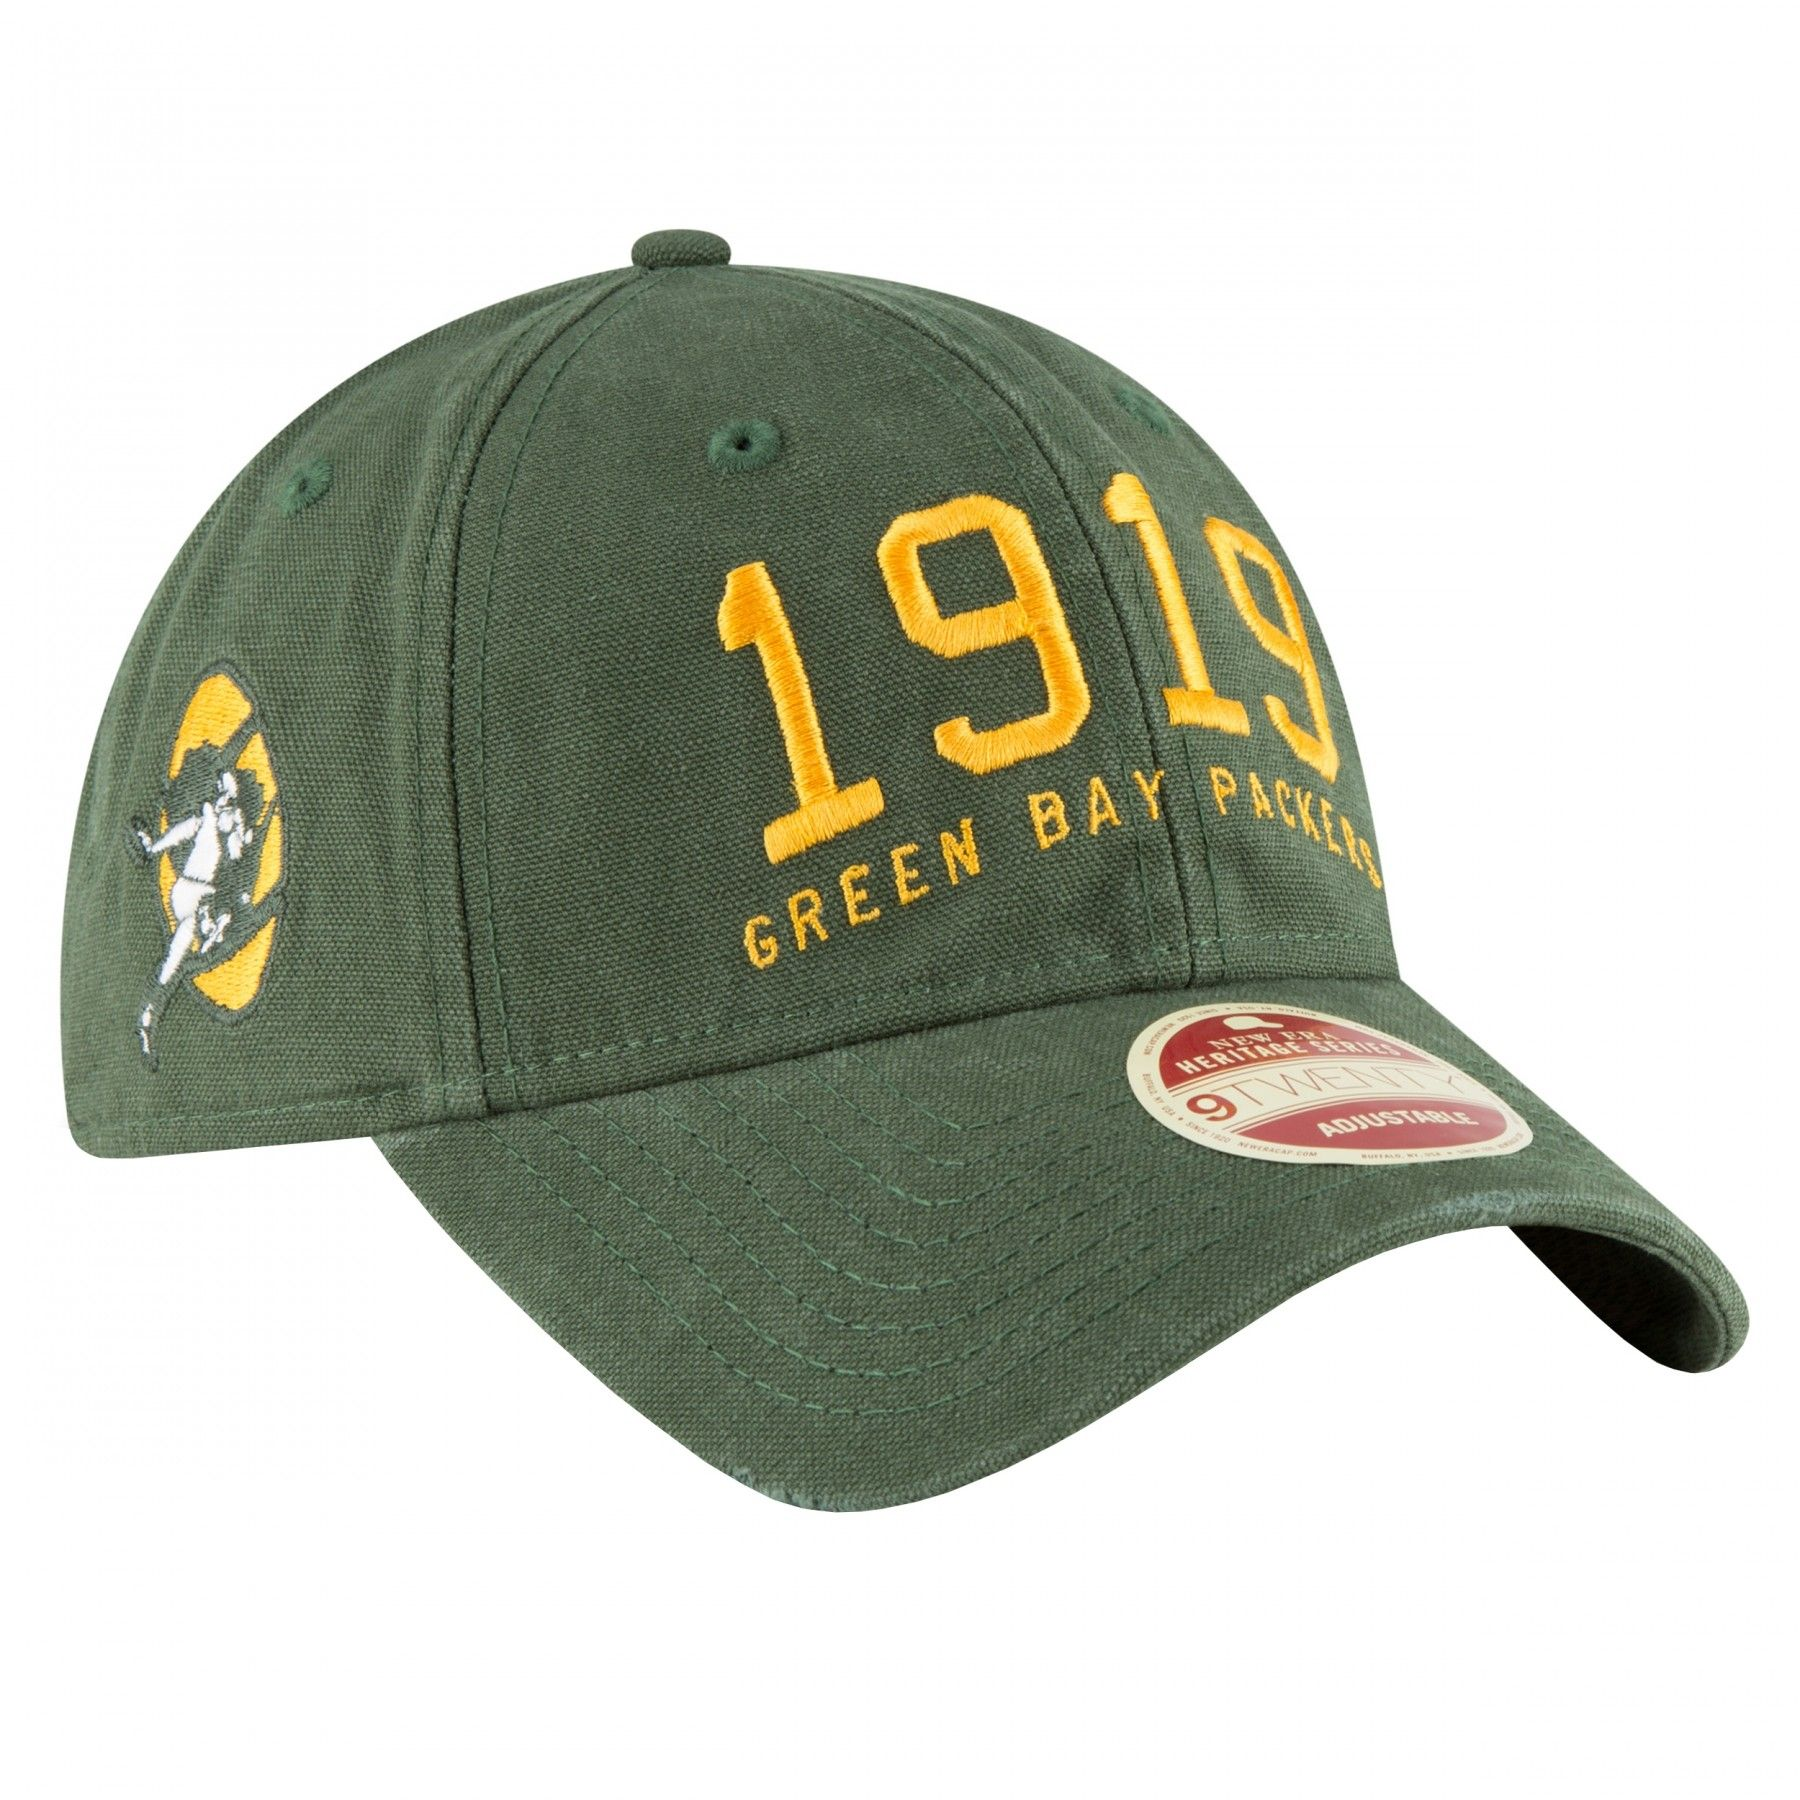 Green Bay Packers Est Team Front 9twenty Cap At The Packers Pro Shop Packers Pro Shop Green Bay Packers Green Bay